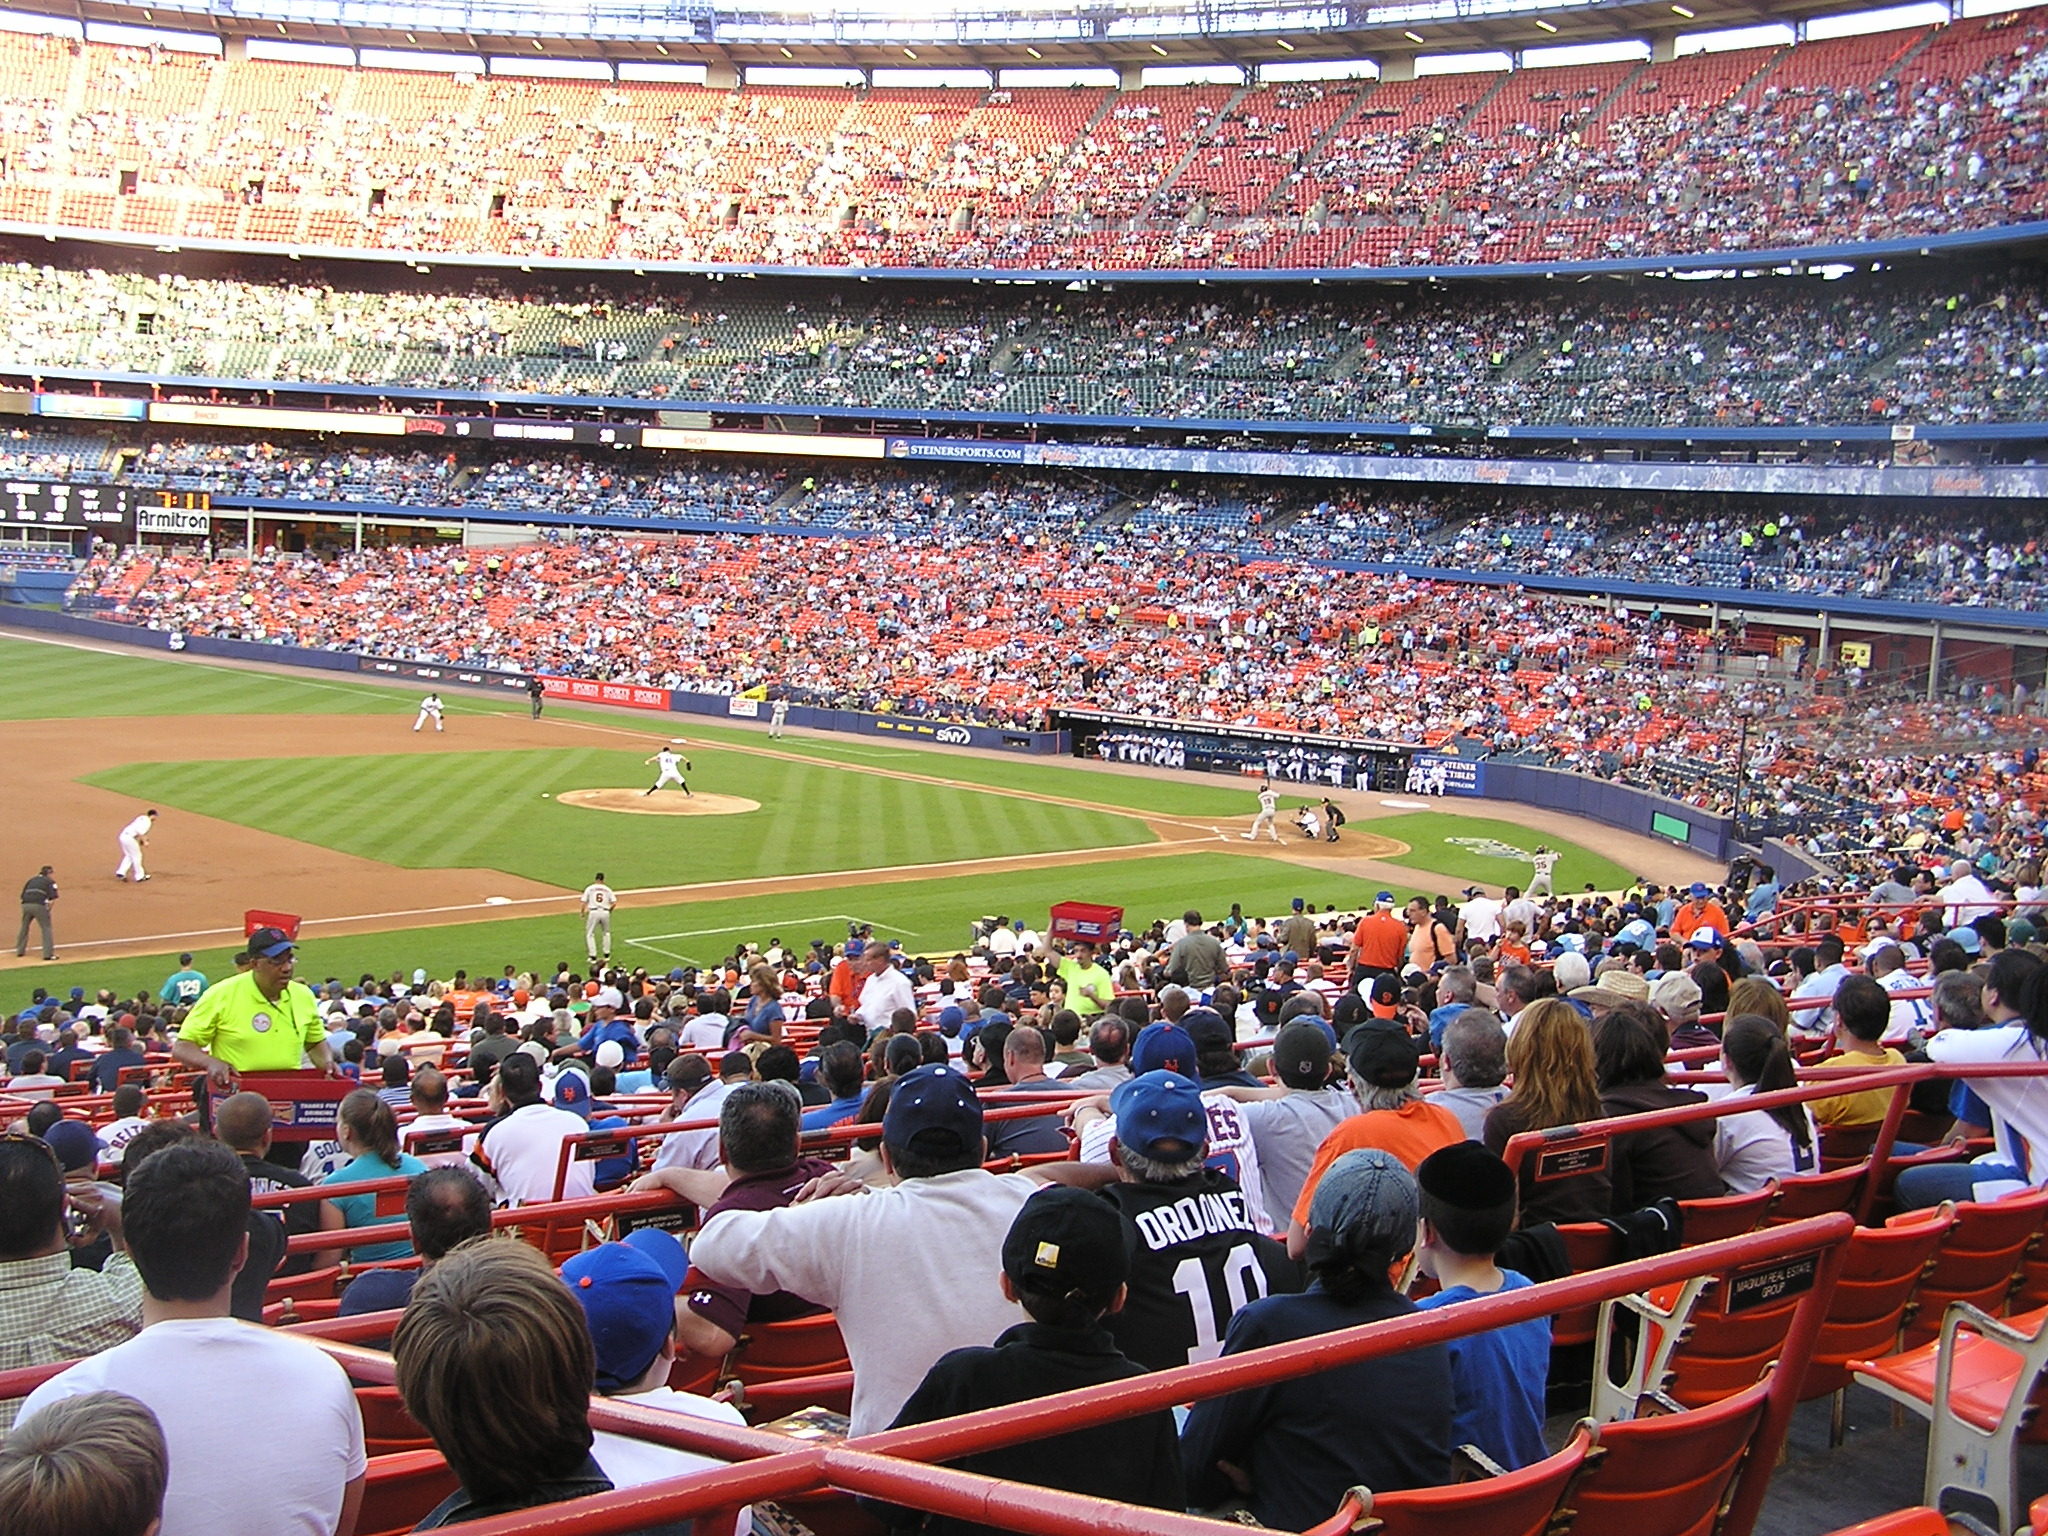 Shea Stadium from behind 3rd base - Flushing, NY